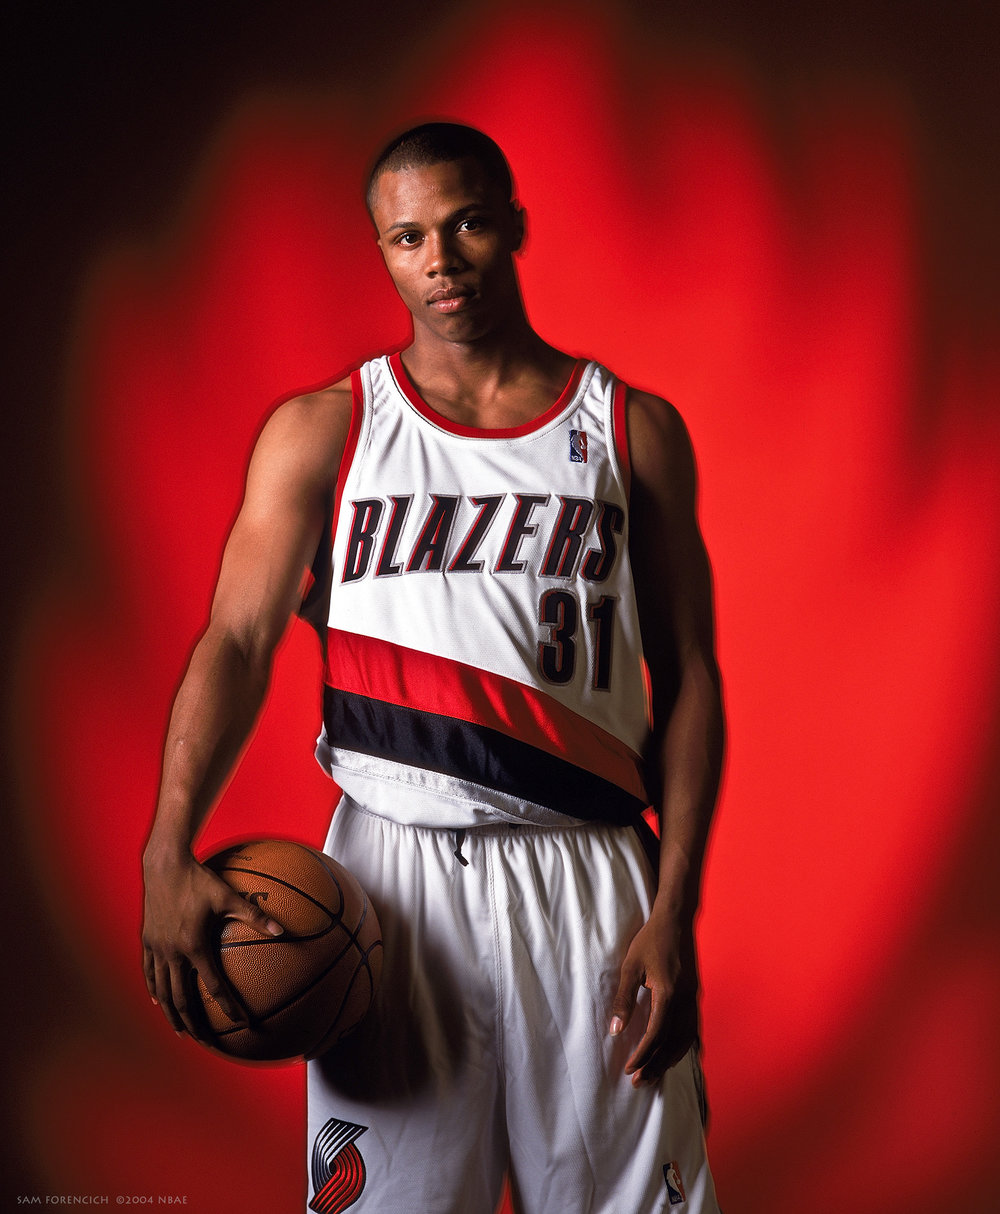 Portland, OR - Sebastian Telfair #31 poses for a portrait in conjunction with the Trail Blazer's introductory press conference for their 2004 NBA Draft selections at Rose Garden on June 28, 2004. Manually focused Hasselblad, RDP 100 film, studio lighting.  Sam Forencich ©2004 NBAE